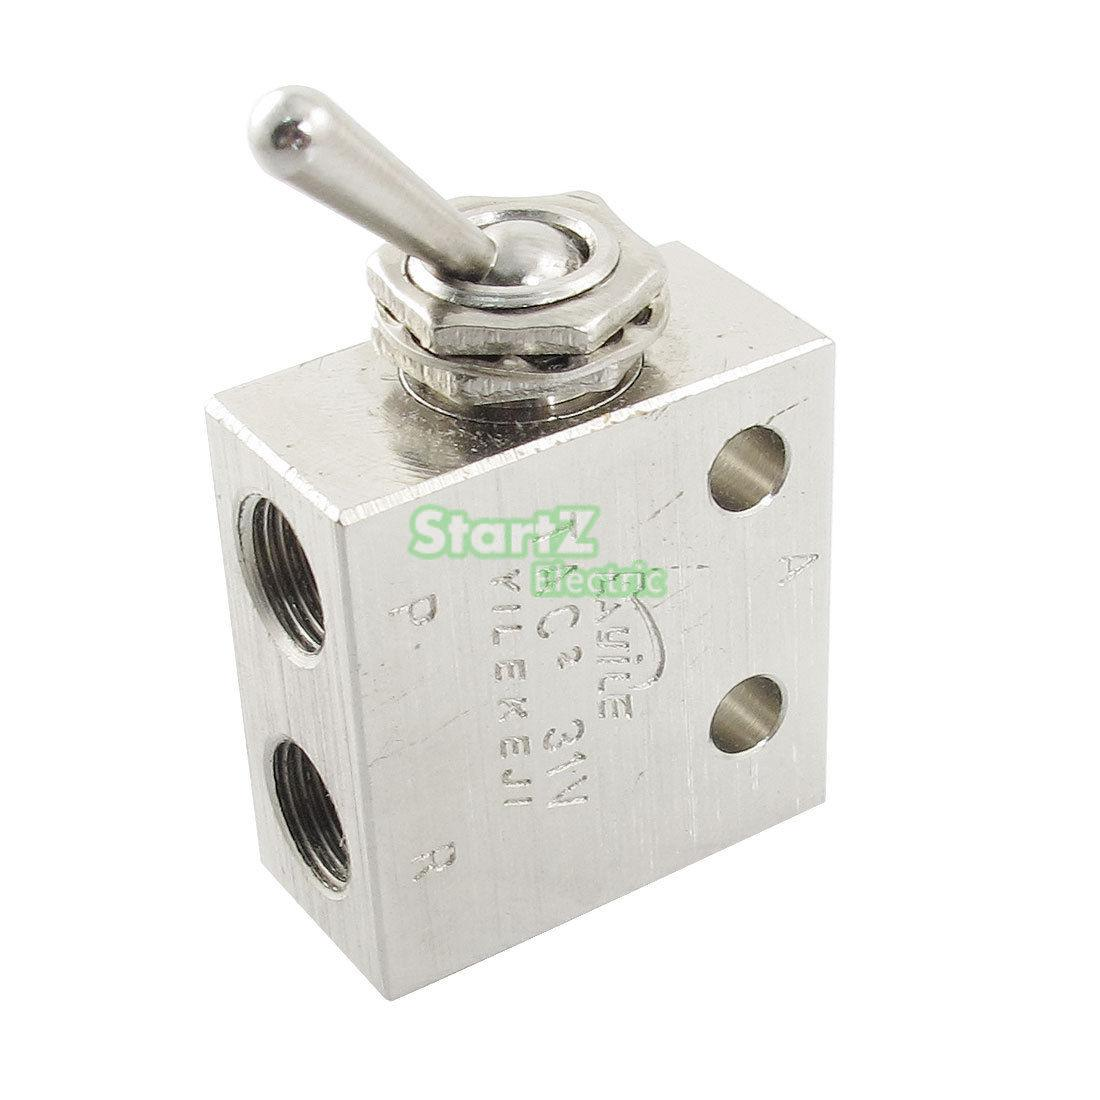 1/8PT Thread 2 Position 3 Way Rectangle Mechanical Air Pneumatic Valve TAC2-31V гардина zlata korunka цвет золотистый высота 180 см